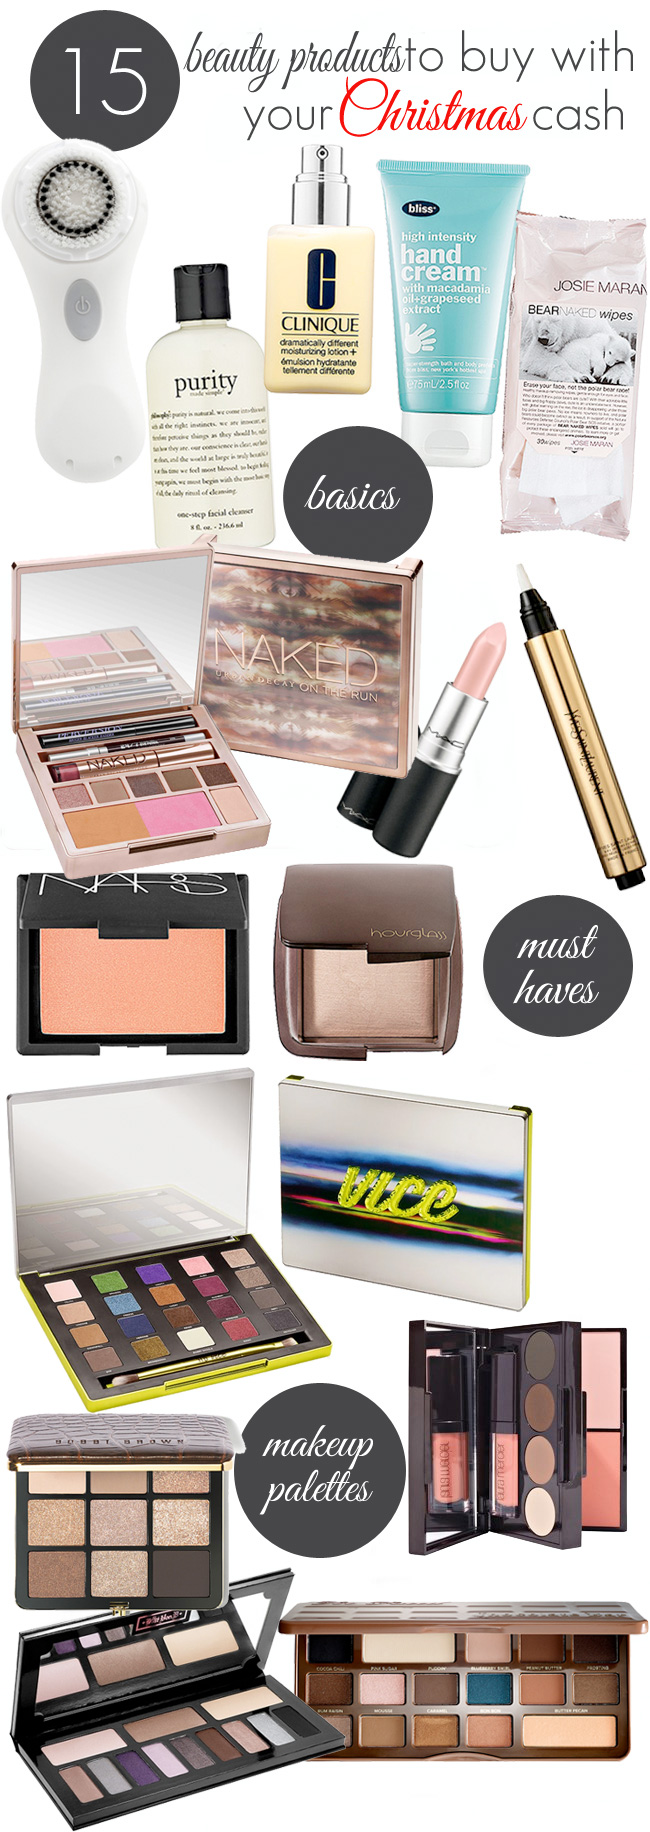 15 Beauty Products to Buy with Your Christmas Cash